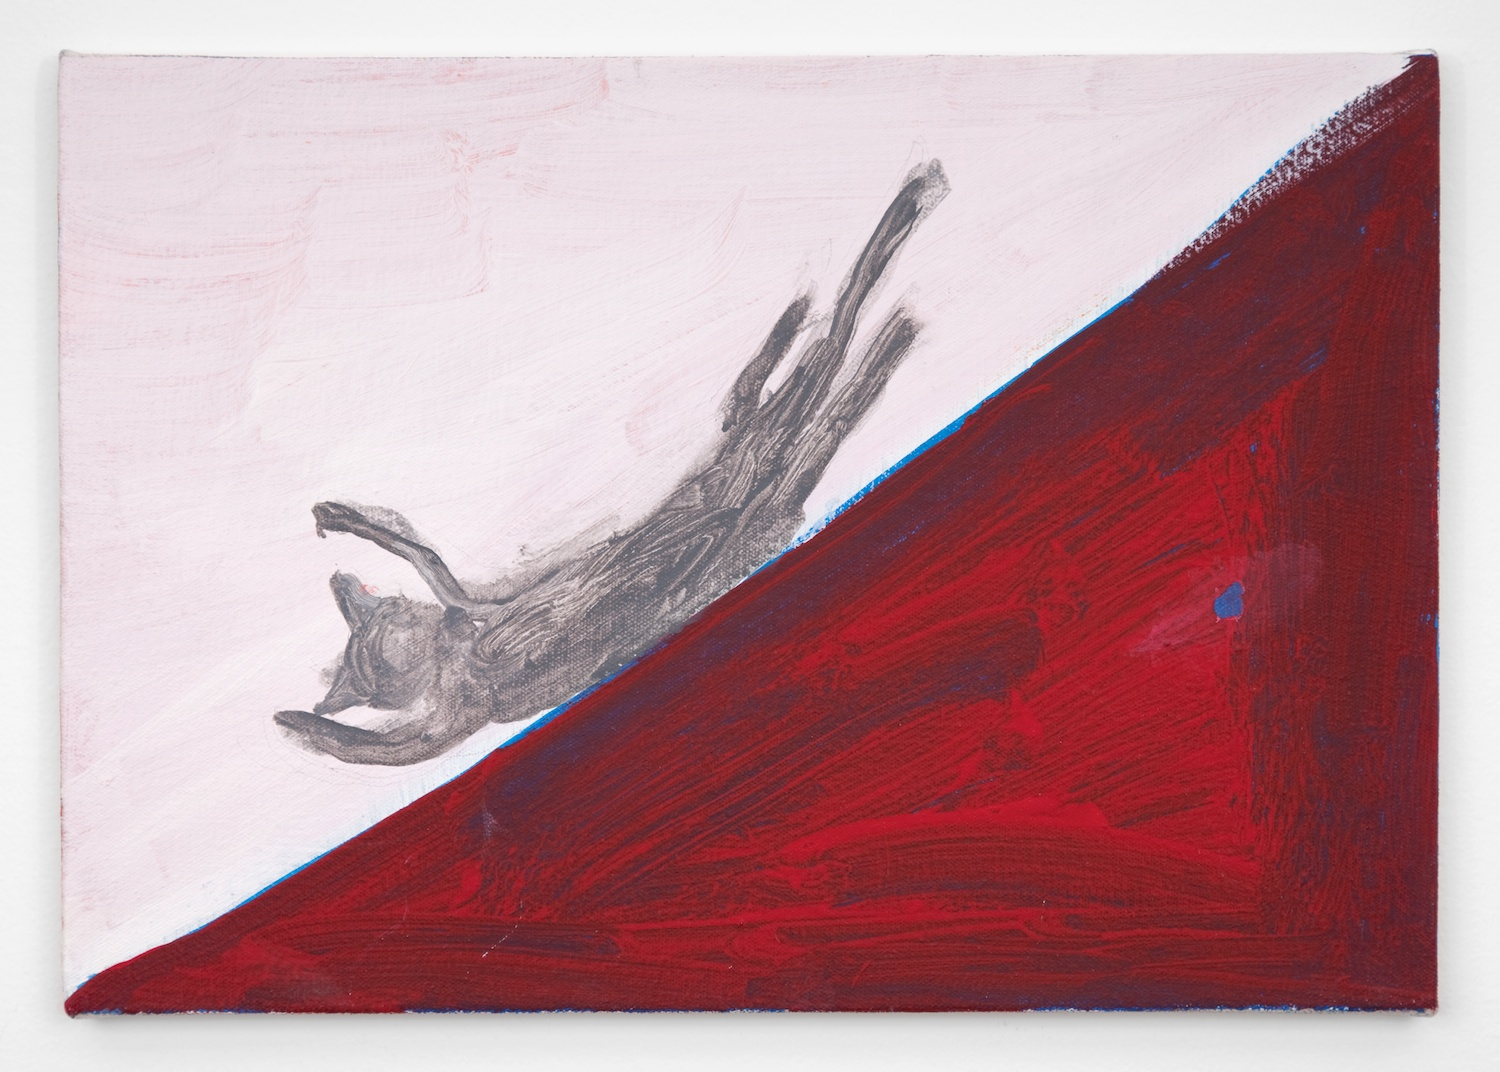 Tam Ochiai  red slide  2007 Acrylic and color pencil on canvas 12 ⅕h x 17 ⅓w in TO001